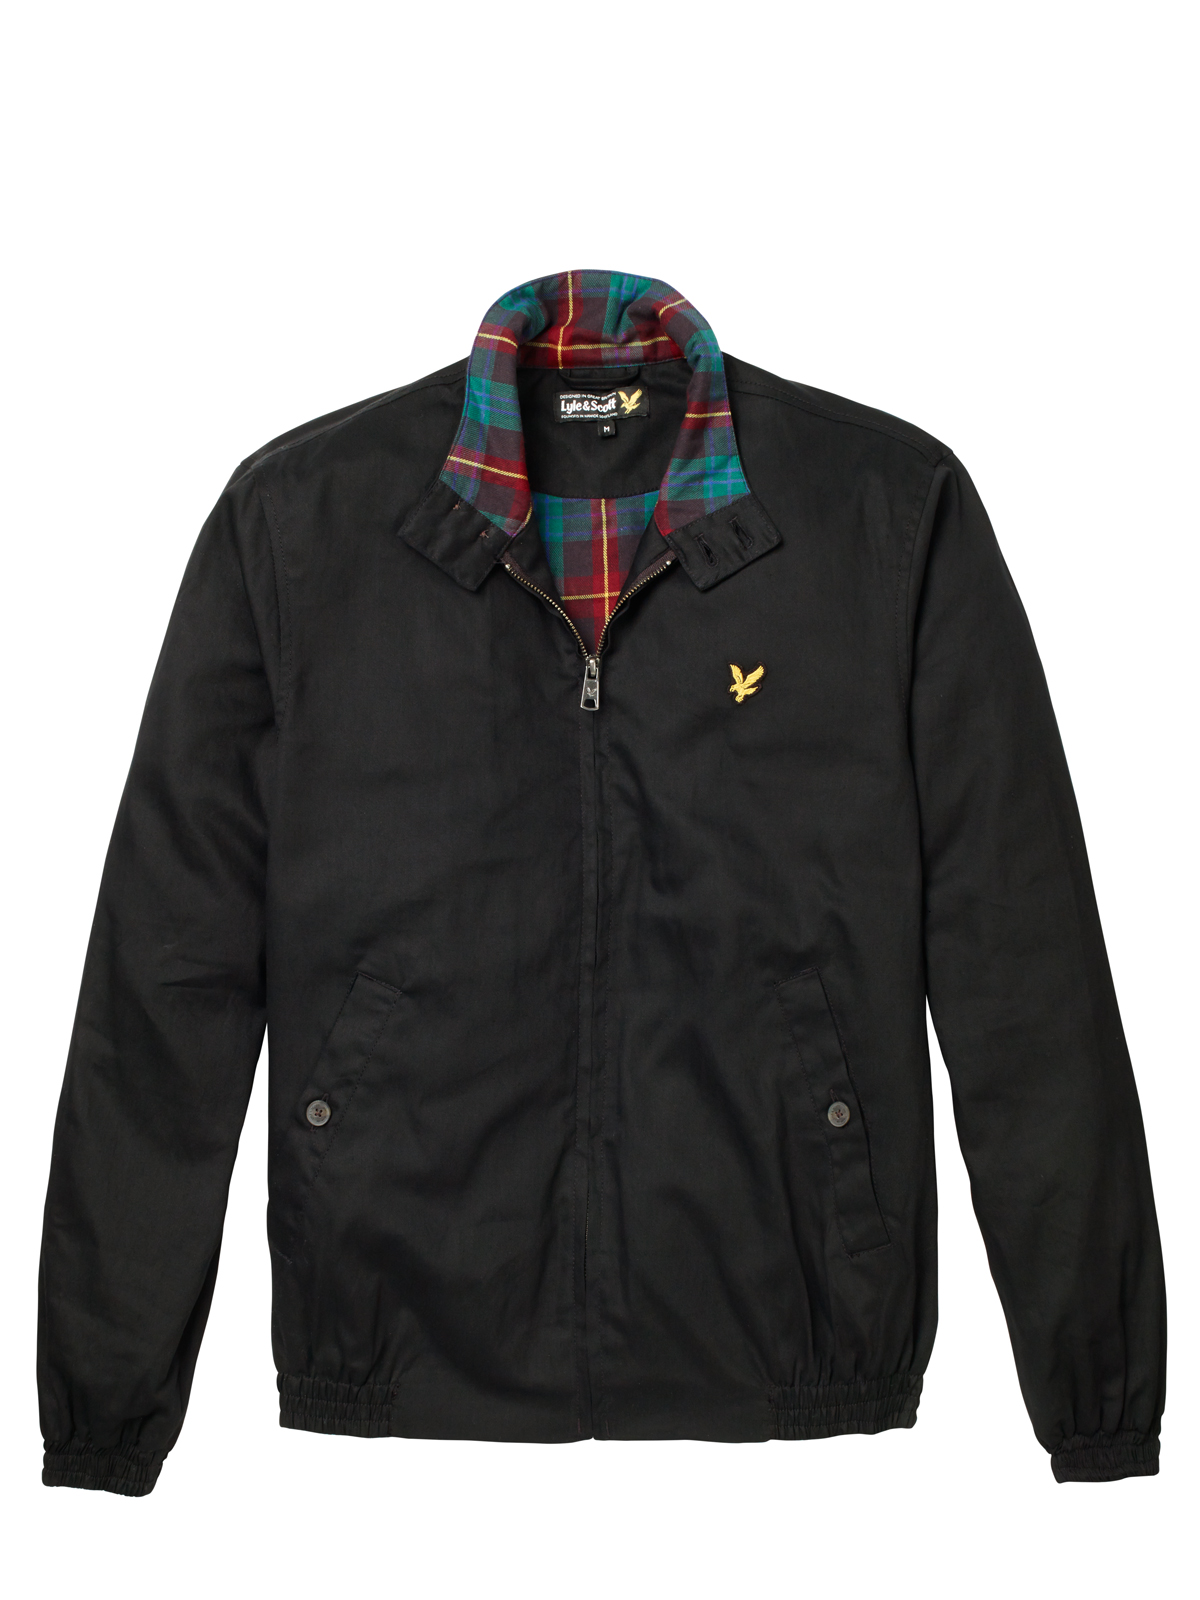 Lyle & Scott Harrington Jacket €115 at Arnotts – Simple and Classy